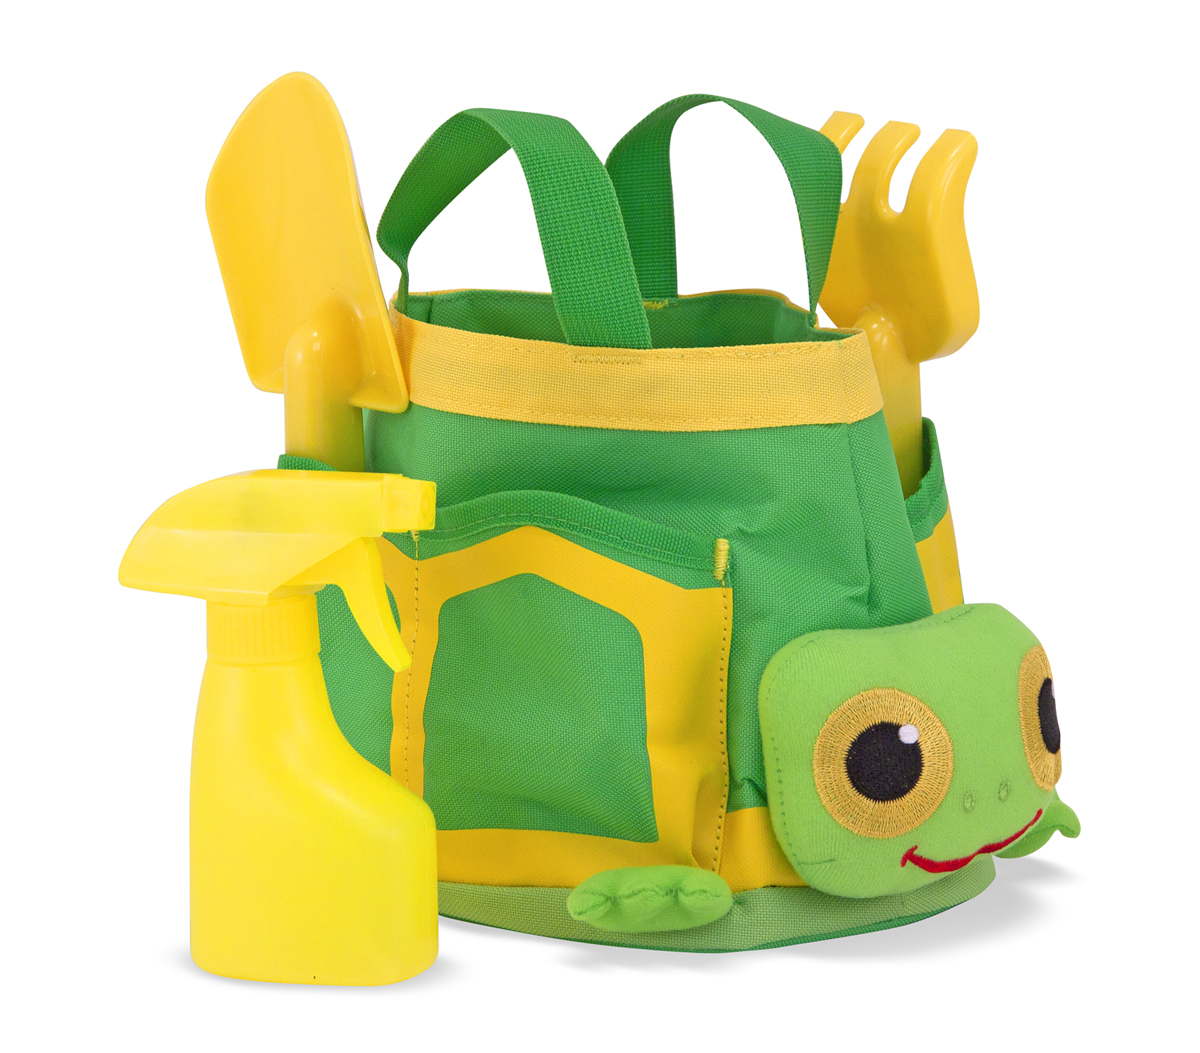 Kids In The Garden Great Gardening Gifts Tools Toys For Kids